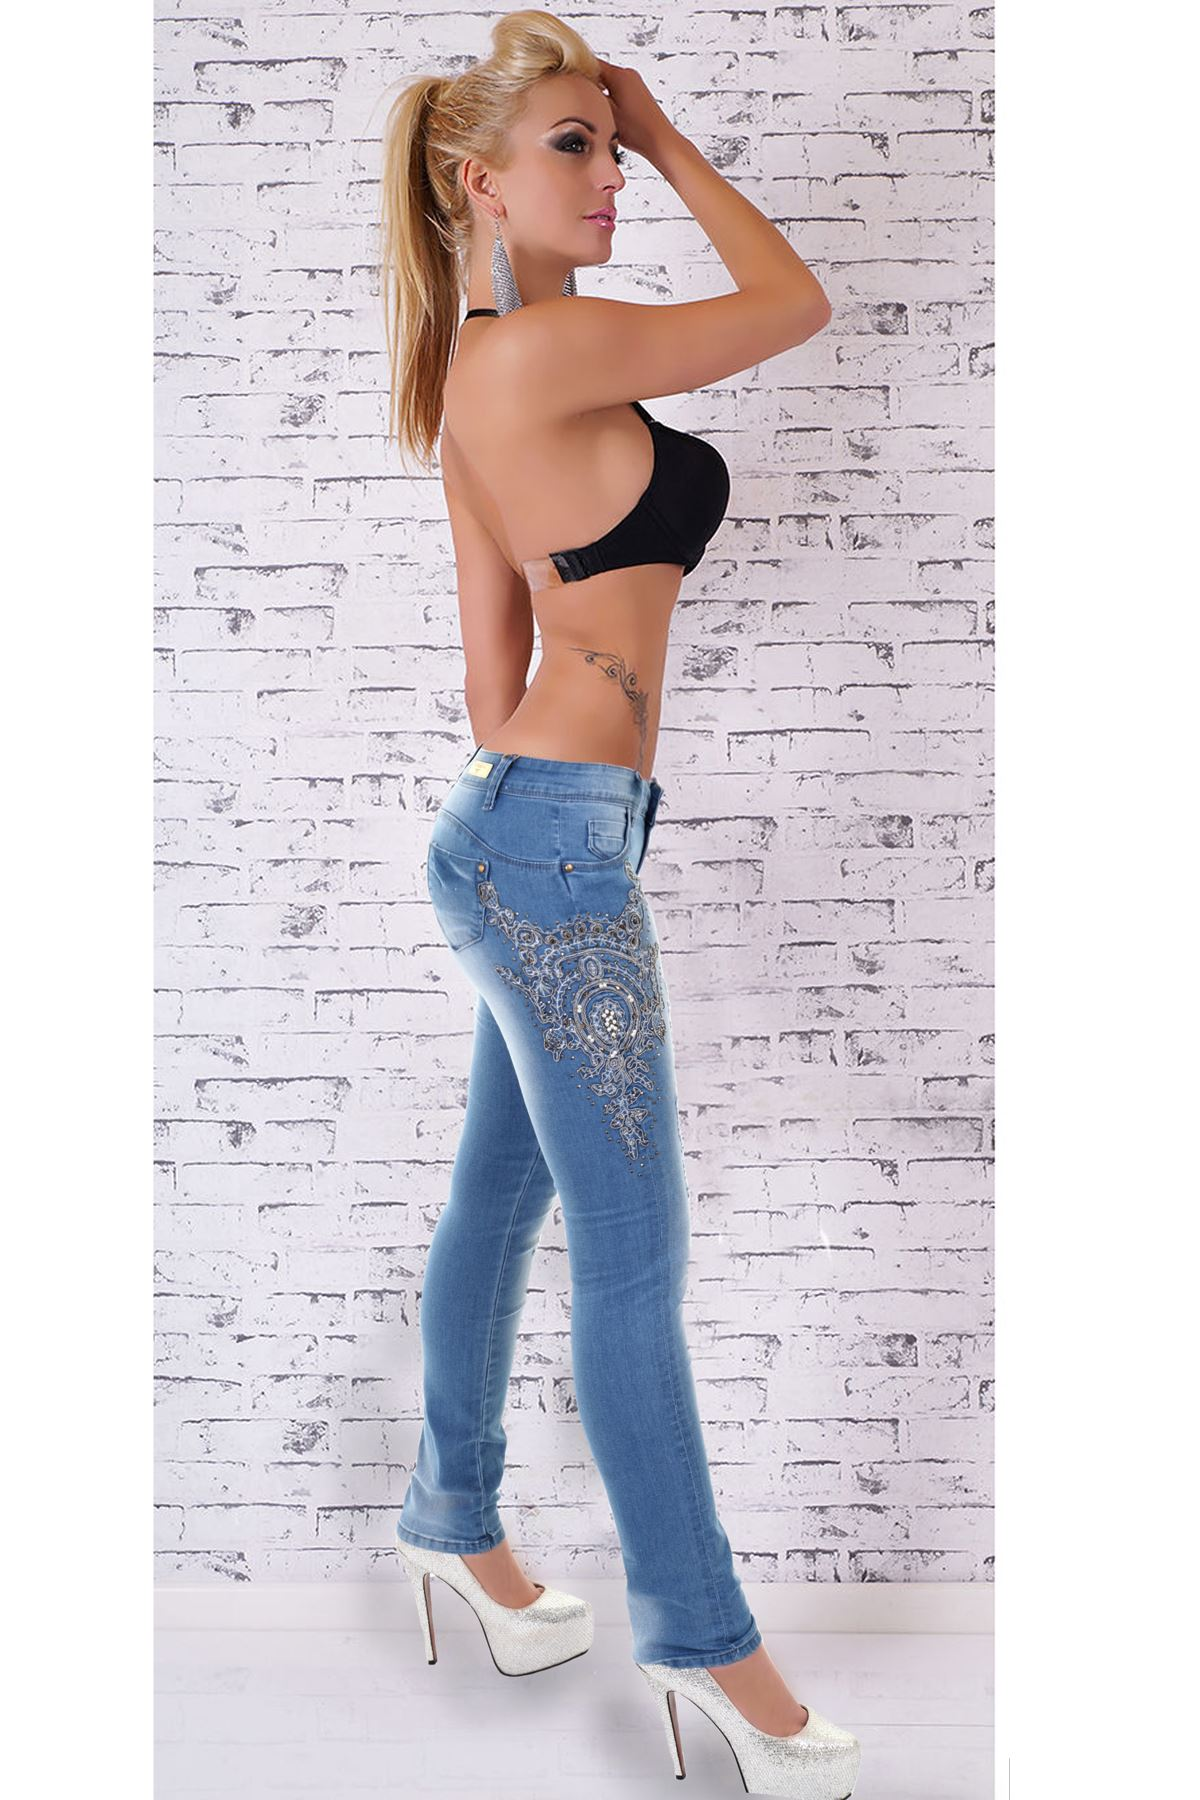 SKIN TIGHT LEGGING. SLIM, SKINNY. REALLY GREAT CLASSIC JEANS. NICE JEANS! These are our standard rates. Rates will be higher for large sizes or extra heavy jeans.